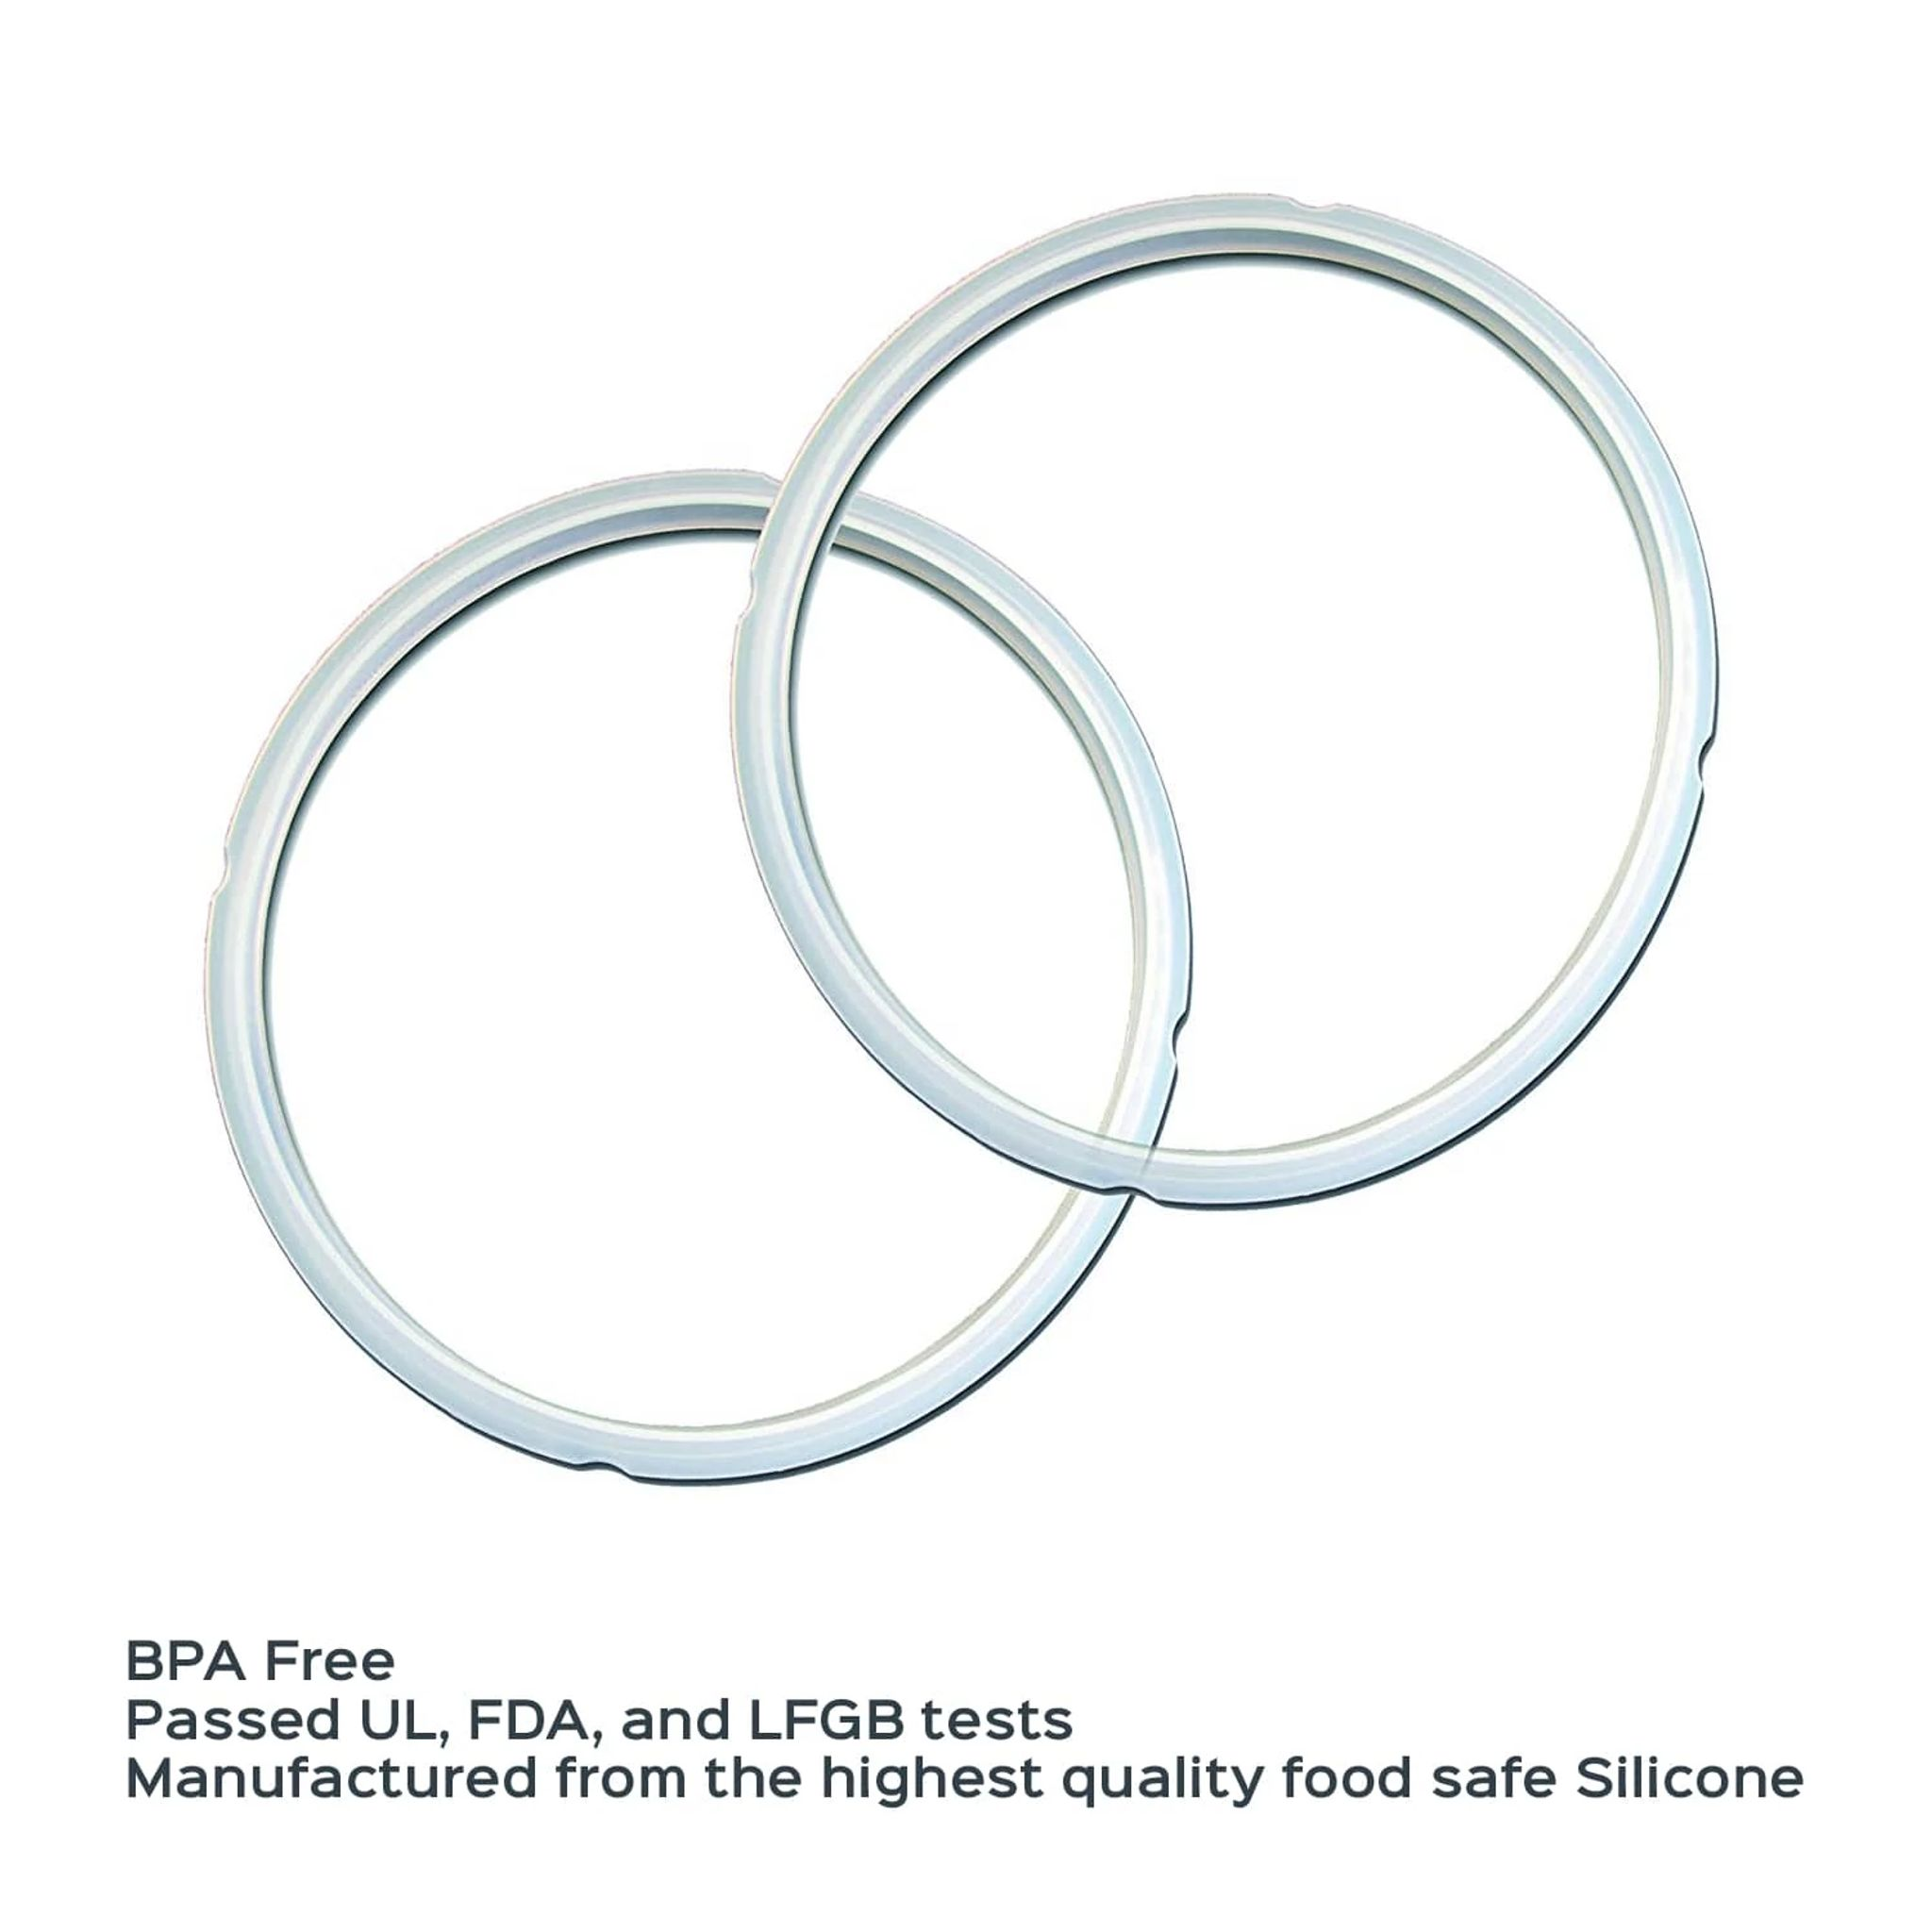 Instant Pot 5 & 6-quart Clear Sealing Ring, 2-pack